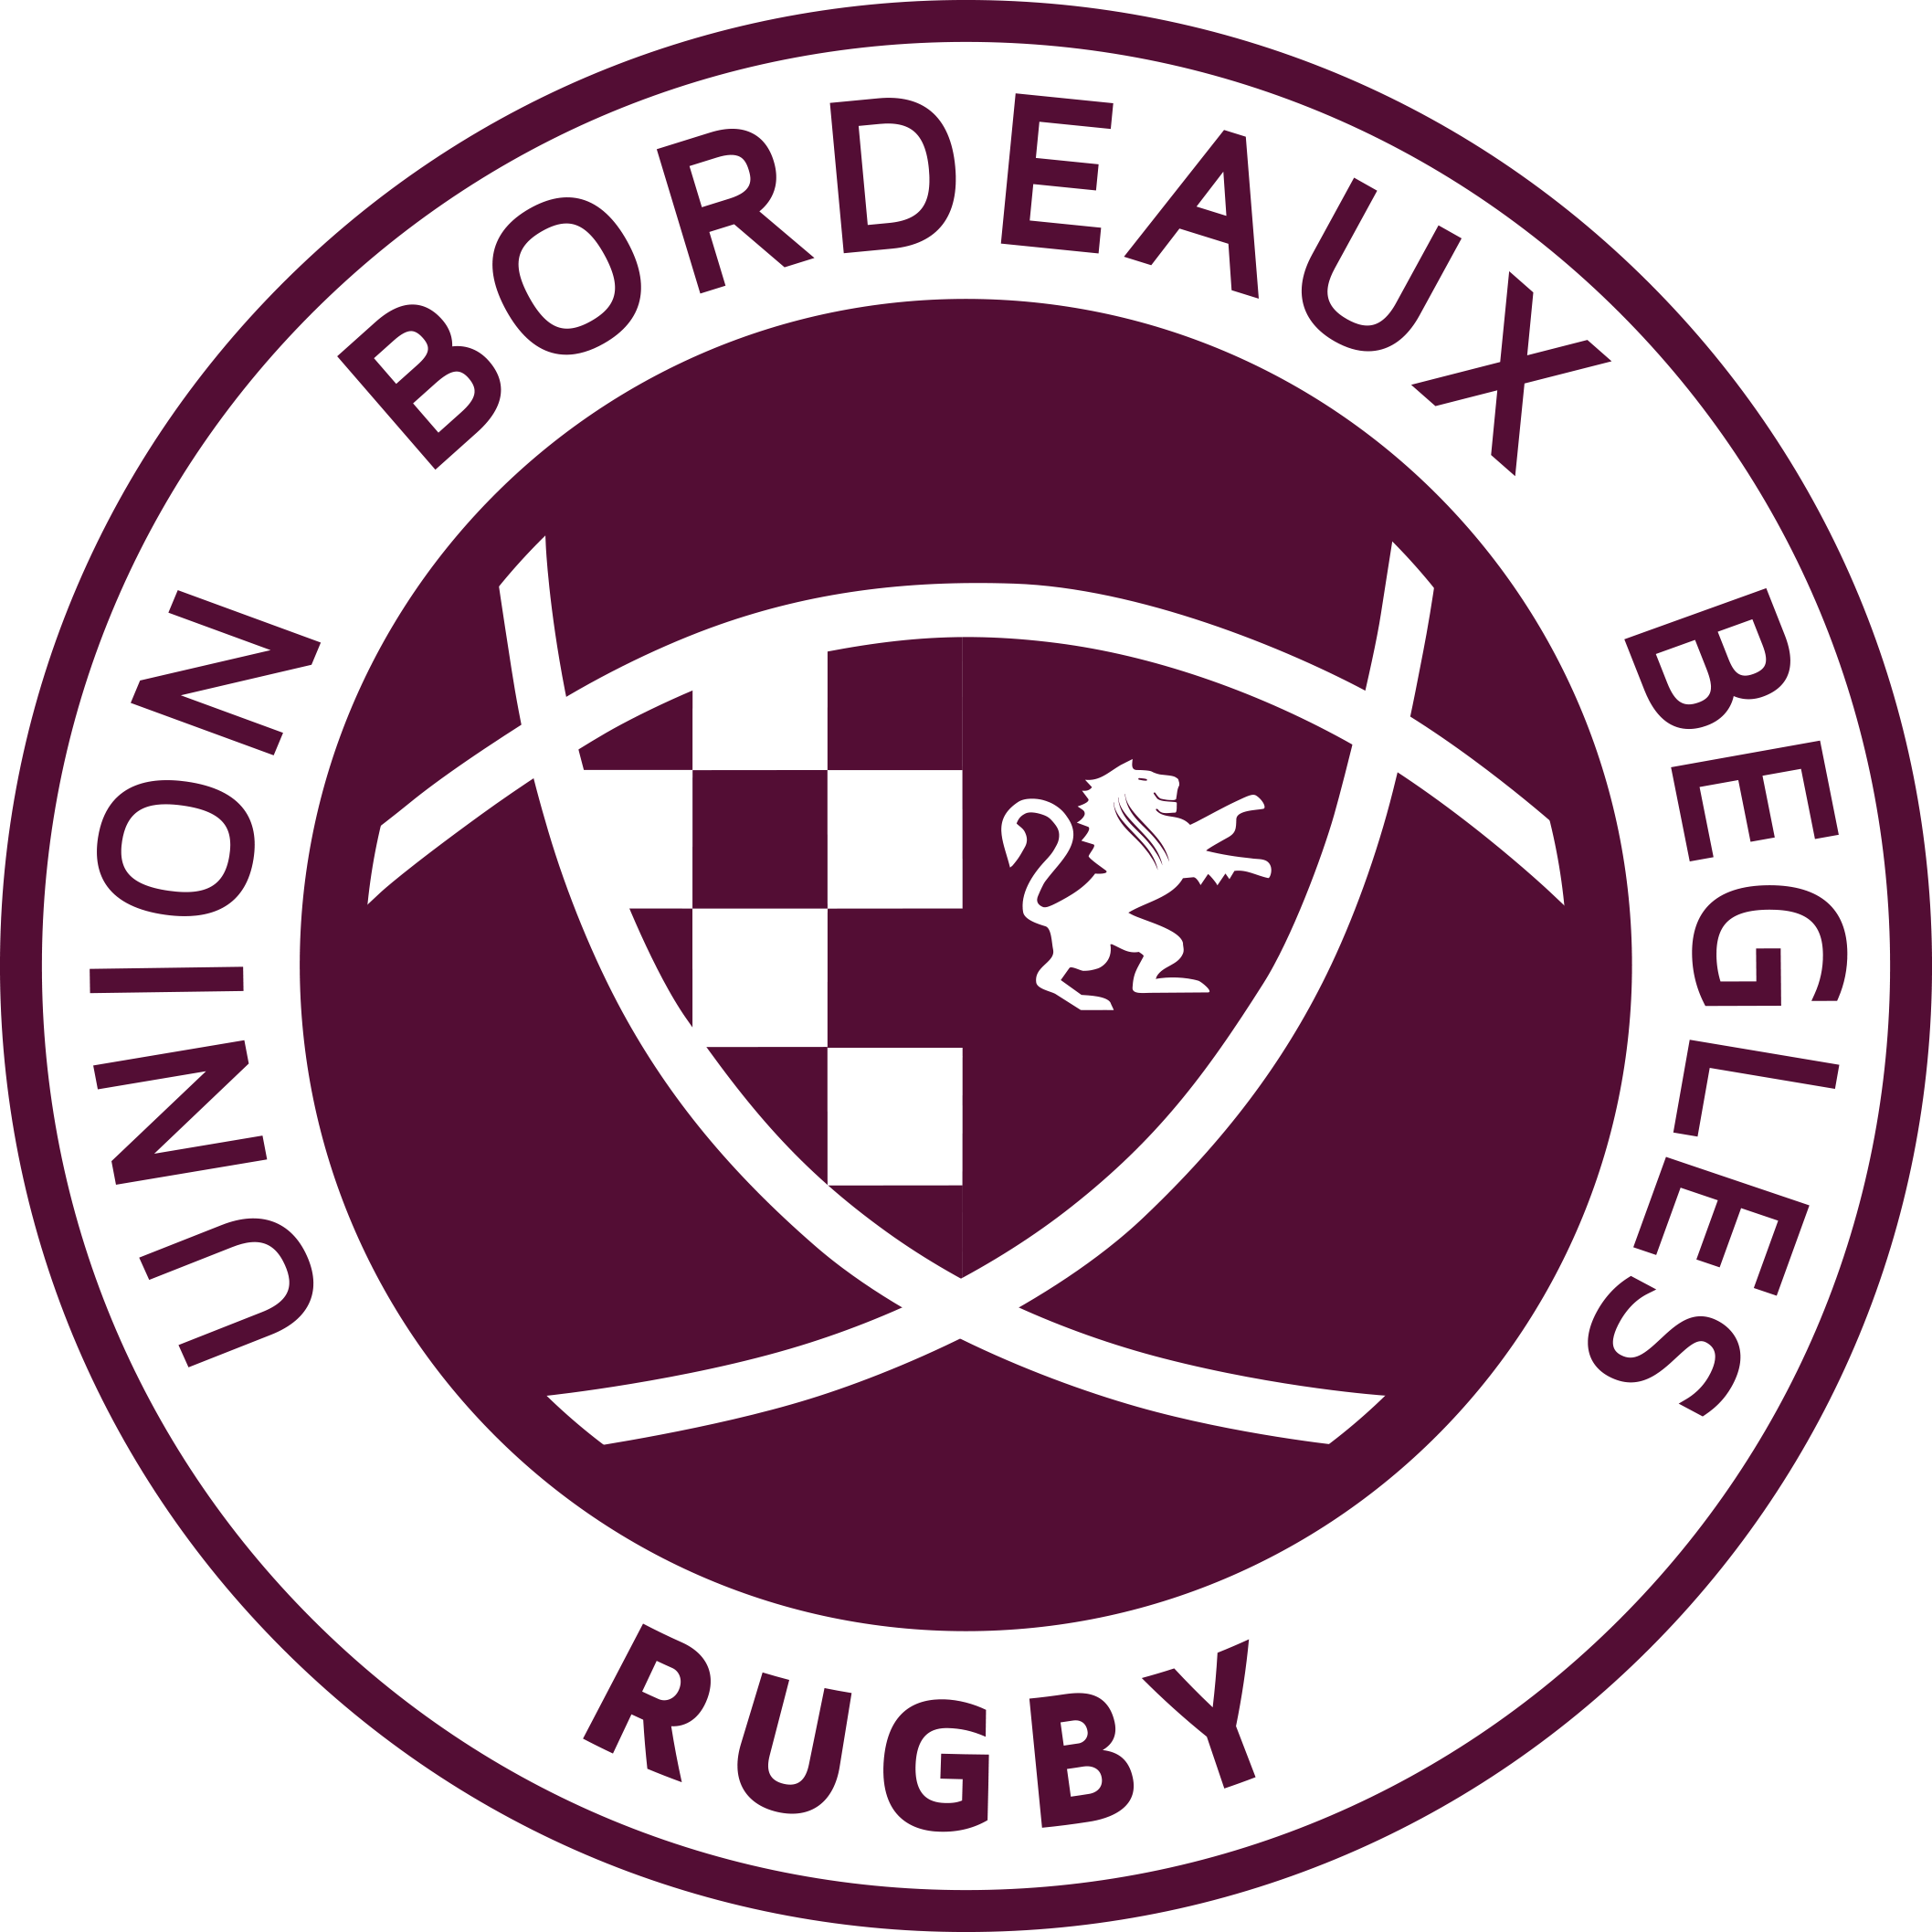 Places UBB Bordeaux